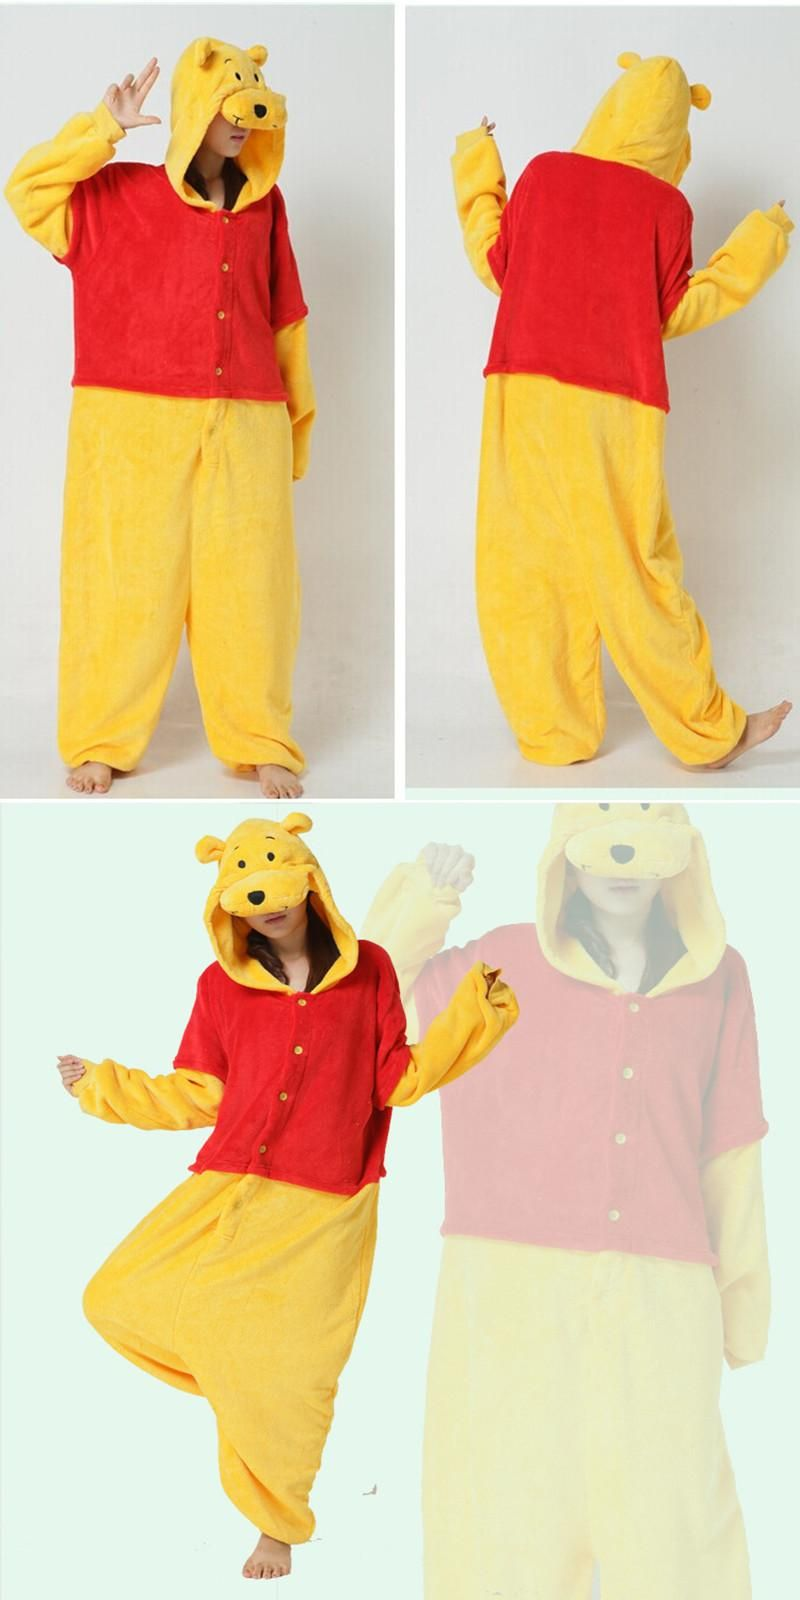 Bear Costume Women Menu0027s Jumpsuit Halloween Party Cosplay Camouflage Costumes For Adults (not include slipper  sc 1 st  Pinterest & Bear Costume Women Menu0027s Jumpsuit Halloween Party Cosplay Camouflage ...